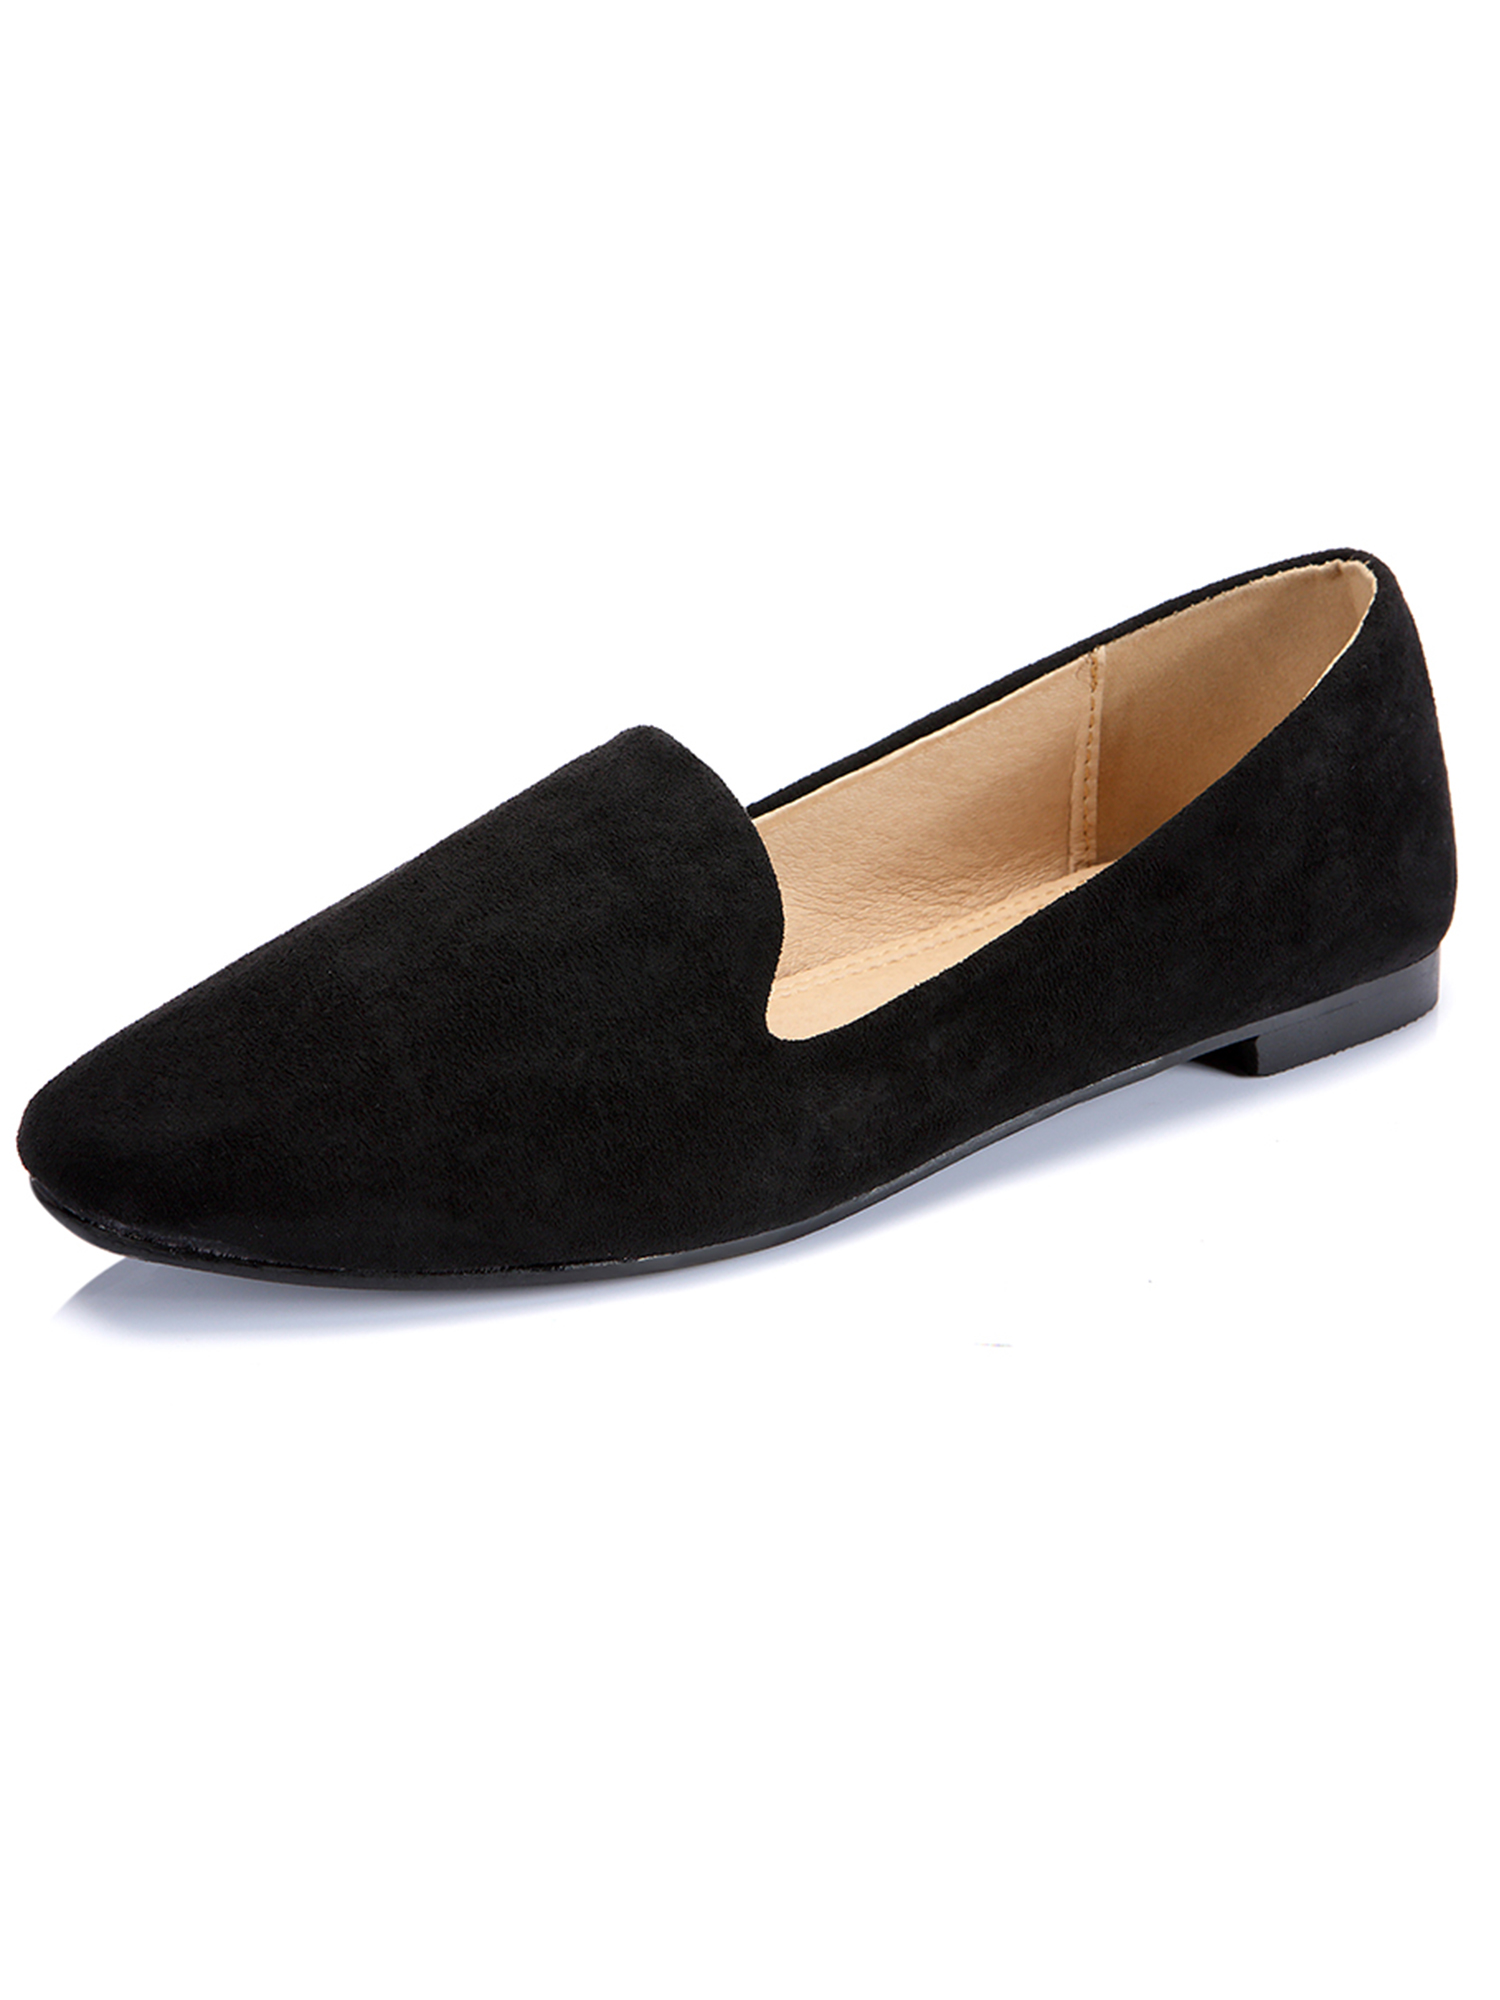 FLORATA Ballet Flats Women Slip On Comfortable Suede Ballerina Flat Shoes Square Toe Casual Boat Shoes